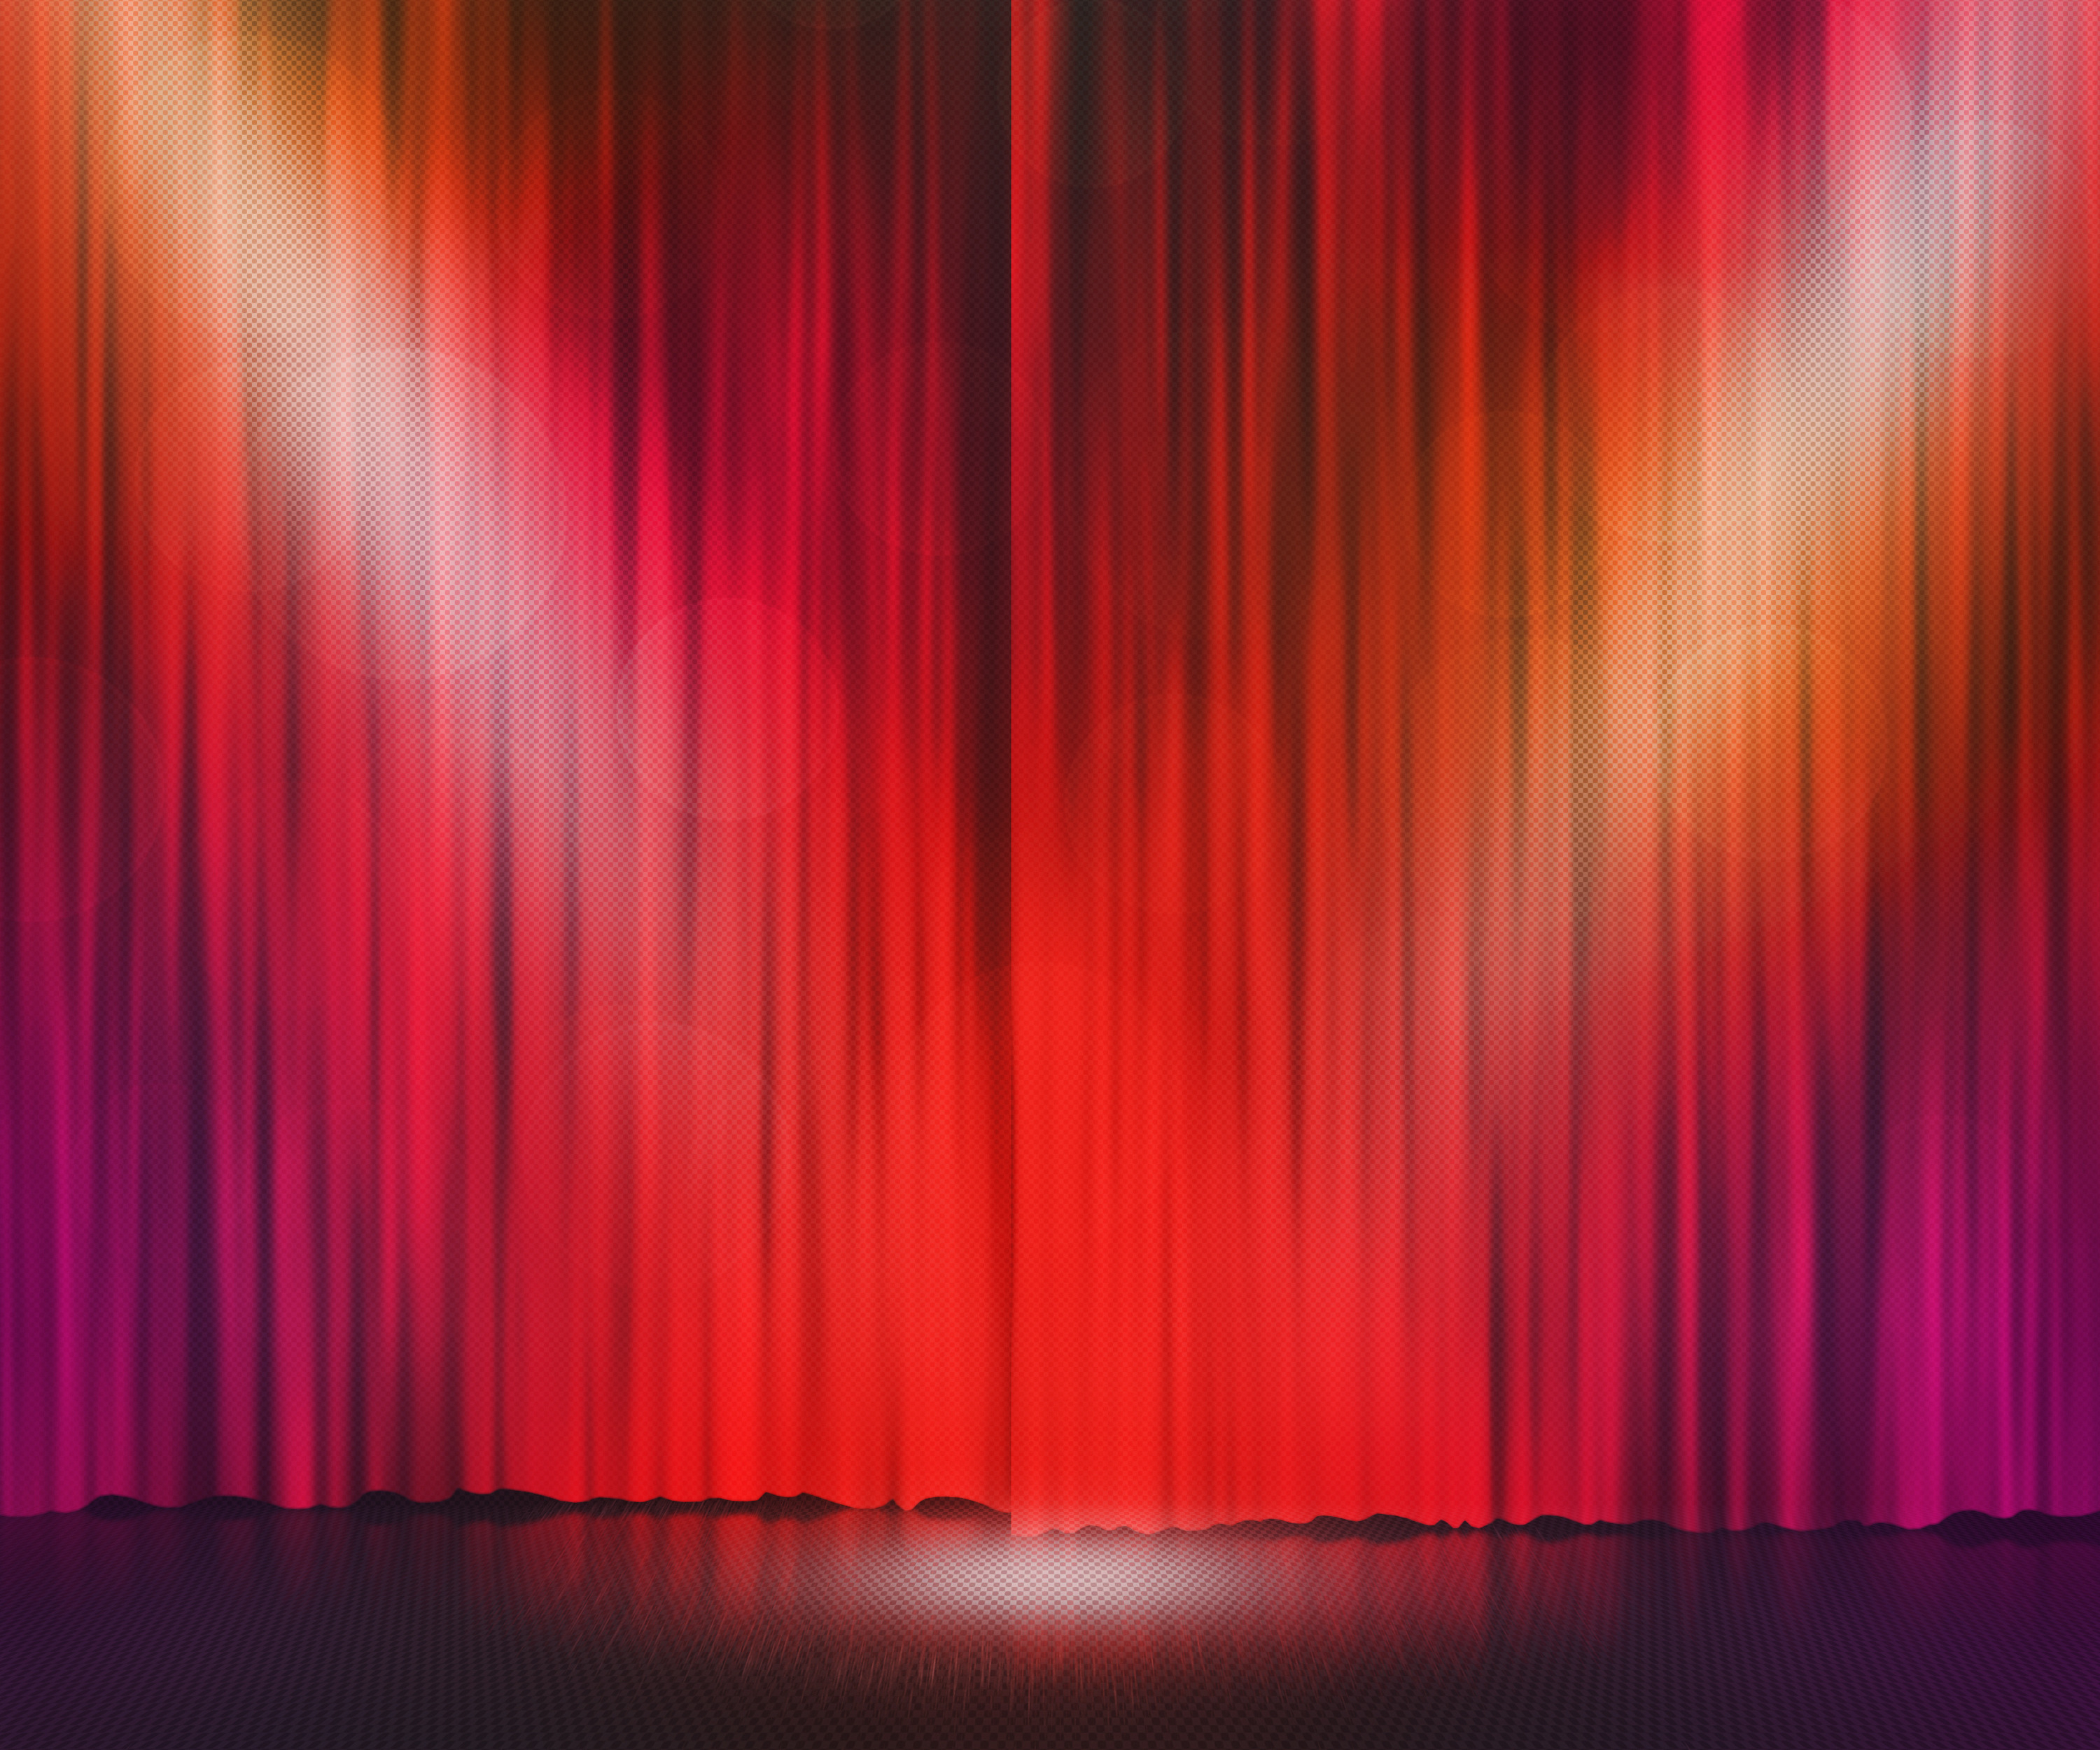 Razzie Nominees Revealed likewise Andy Garcia Cast Ricardo Montalban My Dinner With Herve Hbo also The Greatest Showman besides Oscar go together with Oscar Predictions 2017 Winners Picked In All Categories. on oscar nominees 2017 list